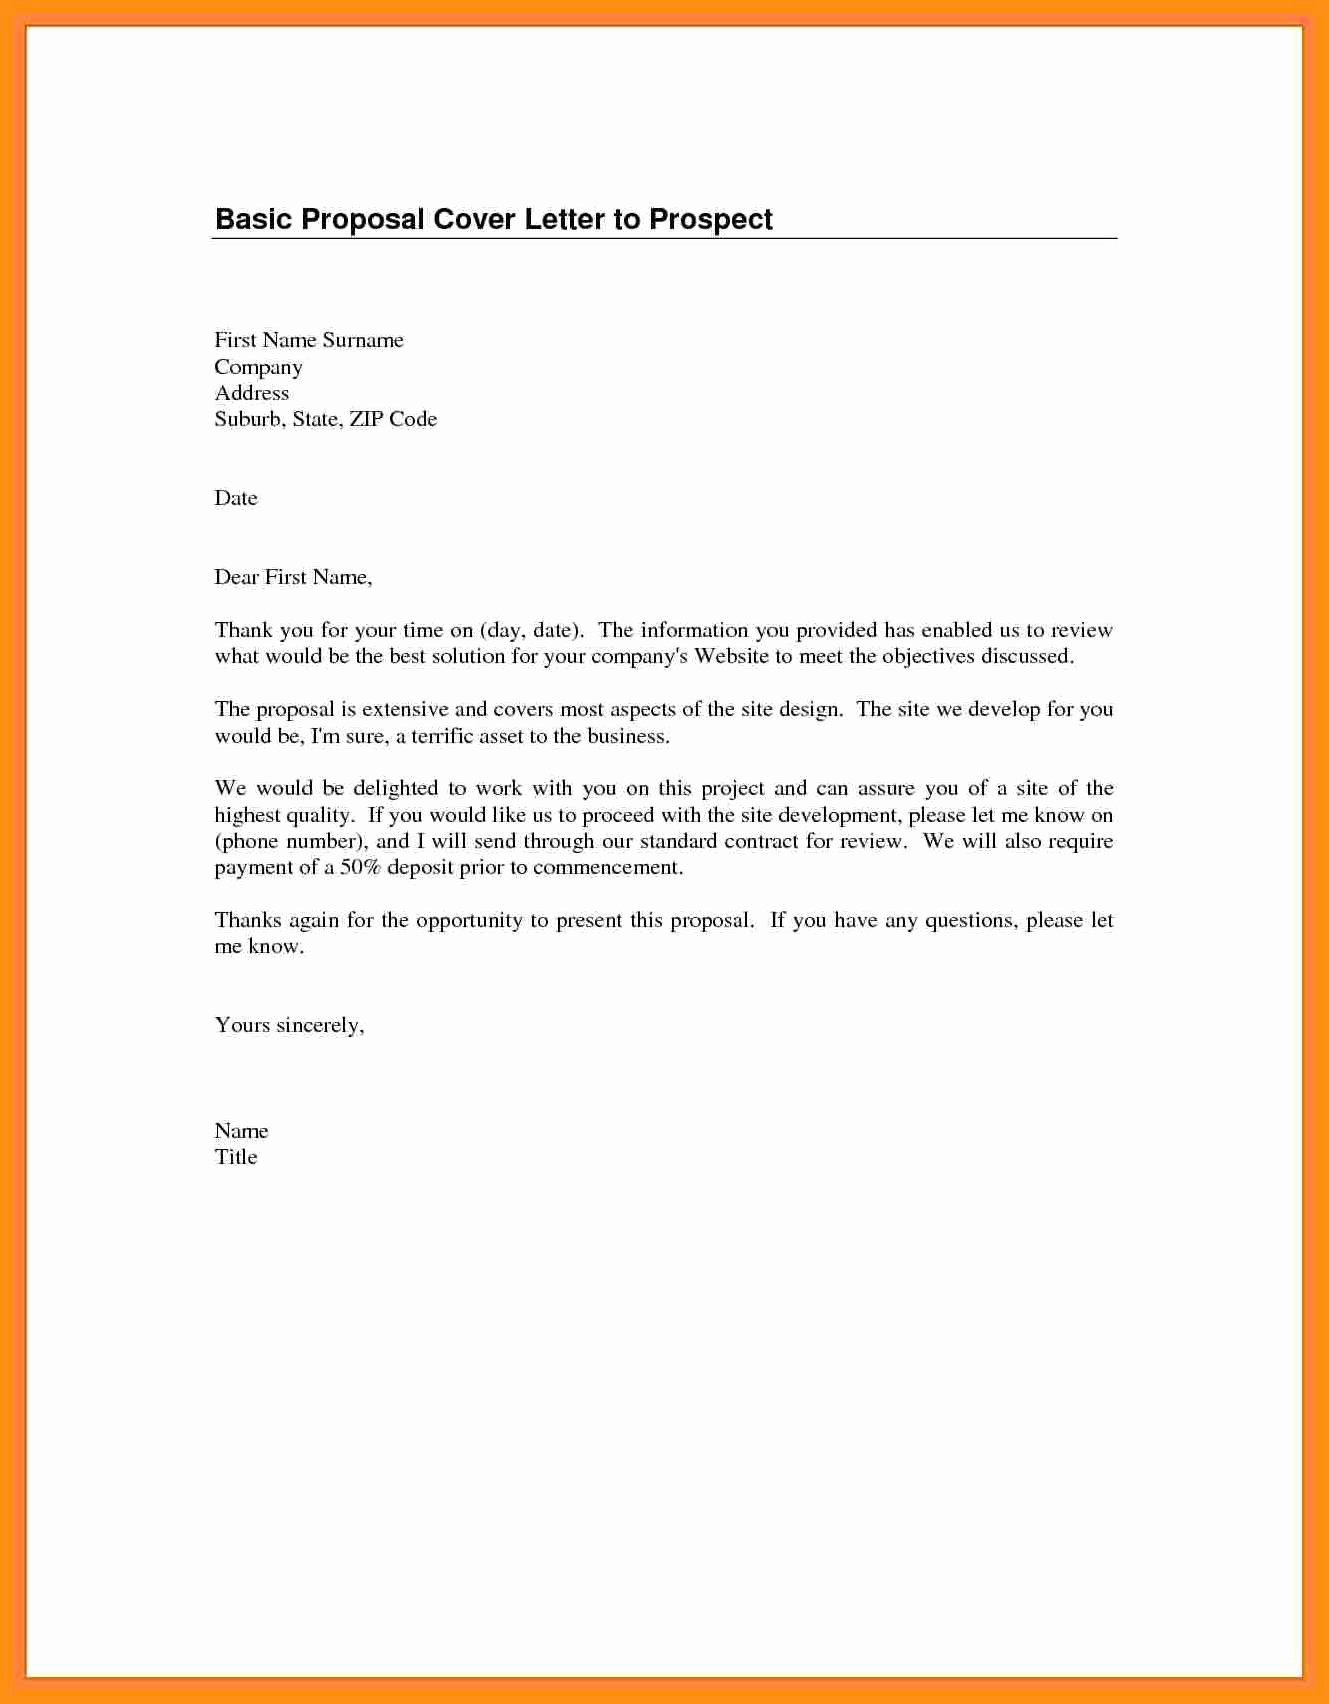 Simple Job Cover Letter Sample Beautiful Basic Cover Letter for Any Job